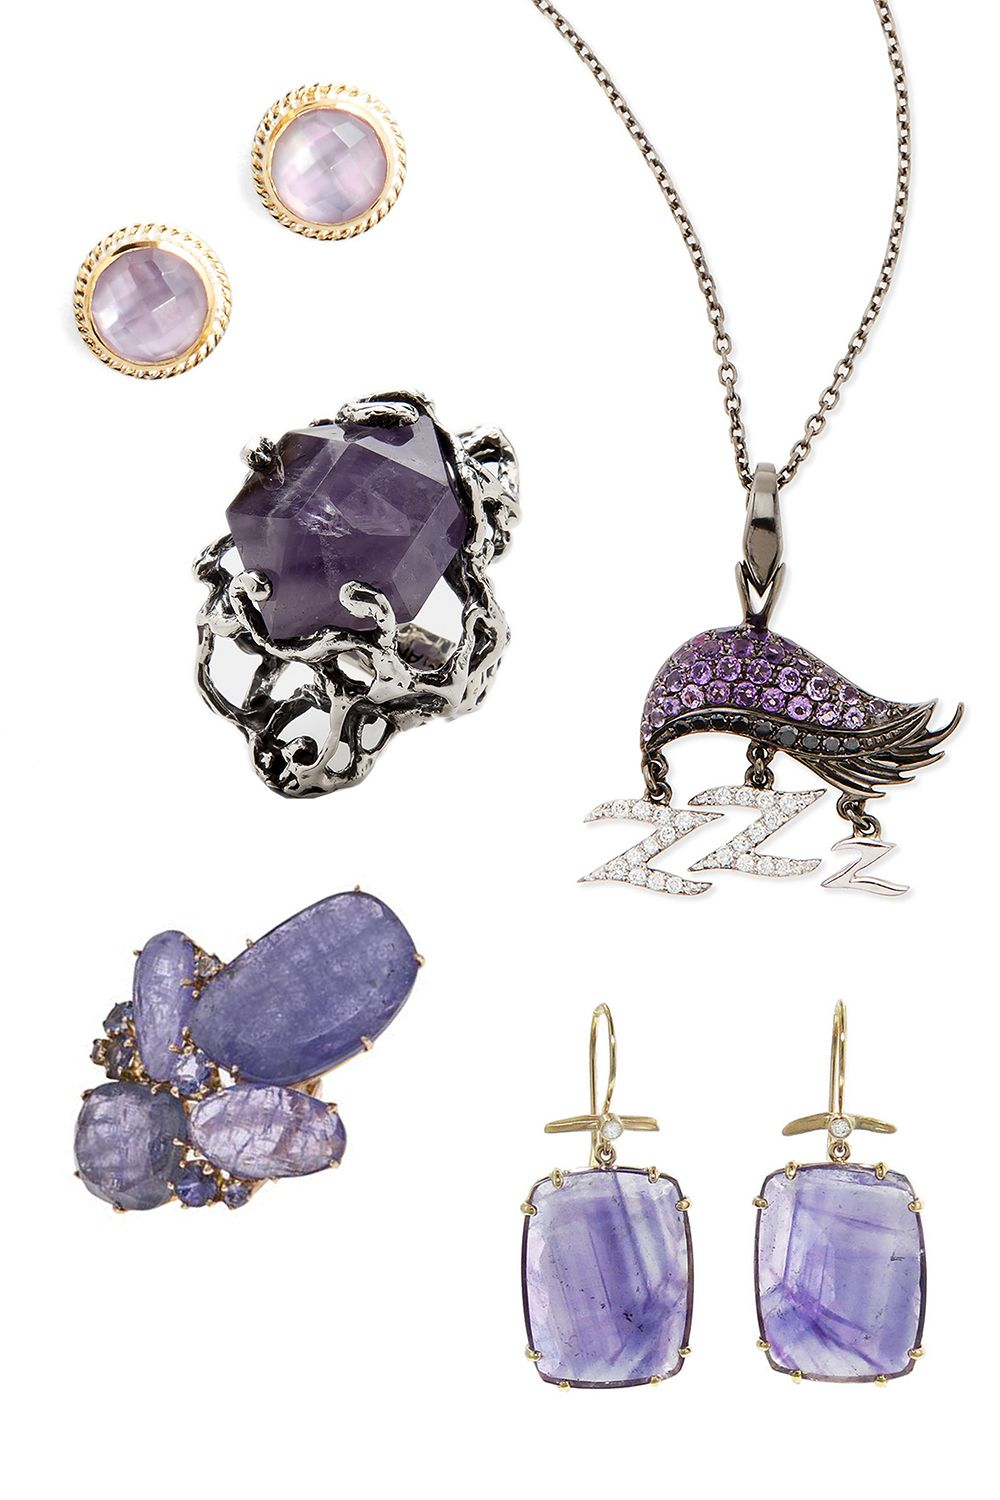 """<p>Anna Beck Stone Stud Earrings, $125&#x3B; <a href=""""http://shop.nordstrom.com/s/4115758?origin=category-personalizedsort&contextualcategoryid=0&fashionColor=Amethyst&resultback=1279"""">nordstrom.com</a></p><p class=""""MsoNormal"""">MANIAMANIA Immortals Ring, $395&#x3B; <a href=""""http://www.themaniamania.com/shop/Rings/immortals-ring-10"""">themaniamania.com</a></p><p class=""""MsoNormal"""">Stephen Webster 18k Sloth Pendant Necklace, $3,950&#x3B; <a href=""""http://www.bergdorfgoodman.com/Stephen-Webster-18K-Sloth-Pendant-Necklace-with-Diamonds-and-Amethyst-Stephen-Webster-/prod103690100___/p.prod?icid=&searchType=MAIN&rte=%2Fsearch.jsp%3FN%3D0%26Ntt%3DStephen%2BWebster%2B%2B%26_requestid%3D63426&eItemId=prod"""">bergdorfgoodman.com</a></p><p class=""""MsoNormal"""">Federica Rettore Amethyst Ring, $11,340&#x3B; <a href=""""http://www.farfetch.com/shopping/women/federica-rettore-amethyst-ring-item-10400040.aspx?storeid=9467&ffref=lp_14_1_"""">farfetch.com</a></p><p class=""""MsoNormal"""">Jamie Joseph Emerald Cut Amethyst Earrings, $1,080&#x3B; <a href=""""https://www.ylang23.com/product/emerald+cut+amethyst+earrings.do?sortby=newArrivals&refType=&from=Search"""">ylang23.com</a></p>"""